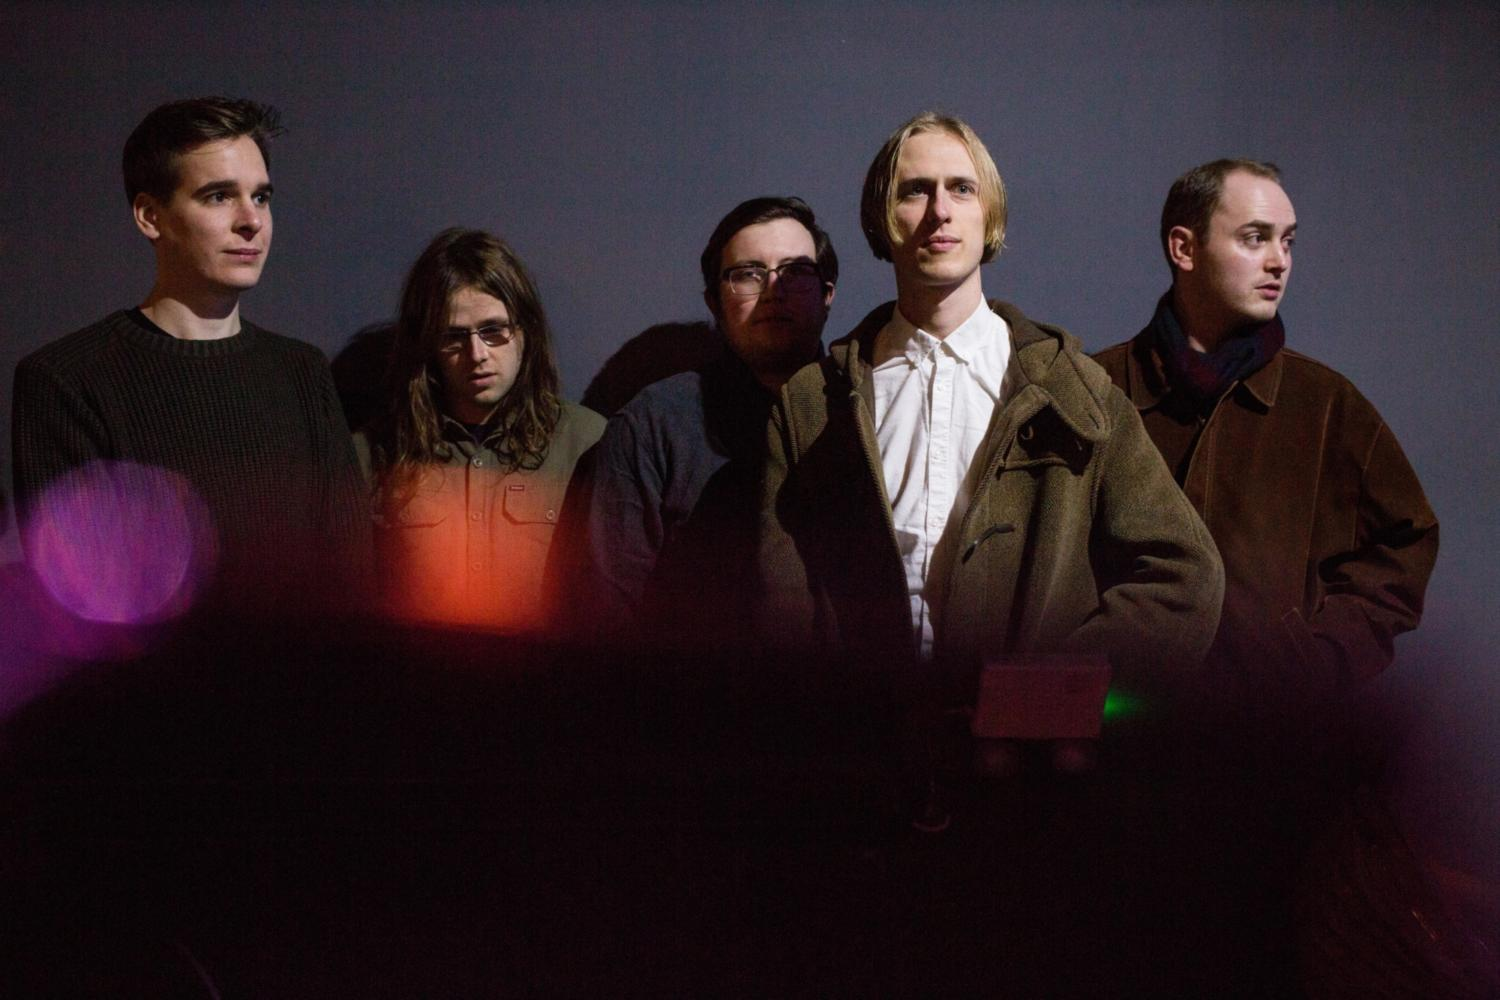 Eagulls find light in darkness in their new 'Velvet' video